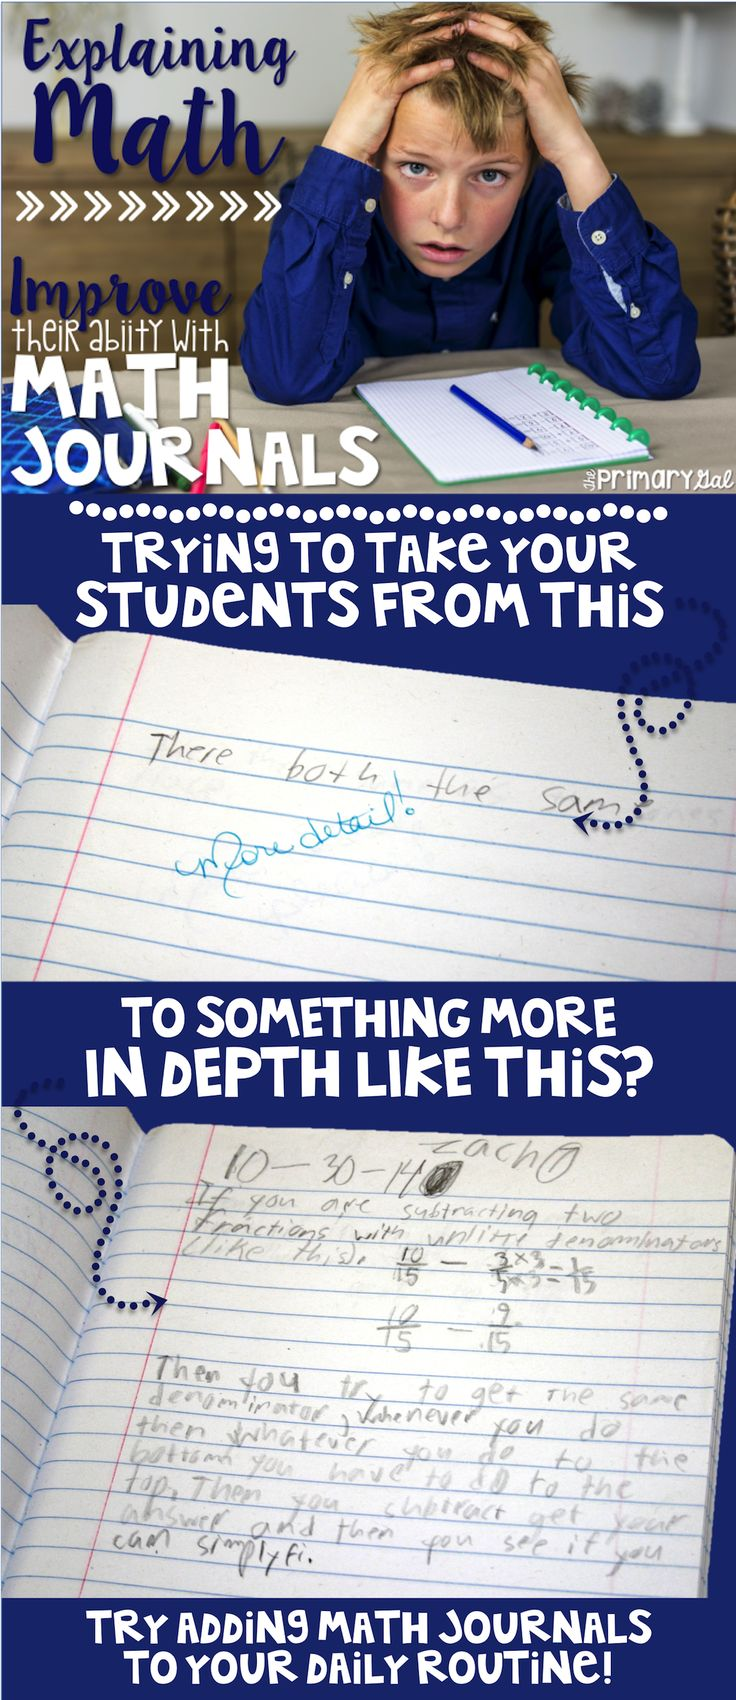 math writing prompts 6th grade Find and save ideas about 6th grade writing prompts on pinterest | see more ideas about 21 things for students, 7th grade writing prompts and writing prompts 2nd grade.